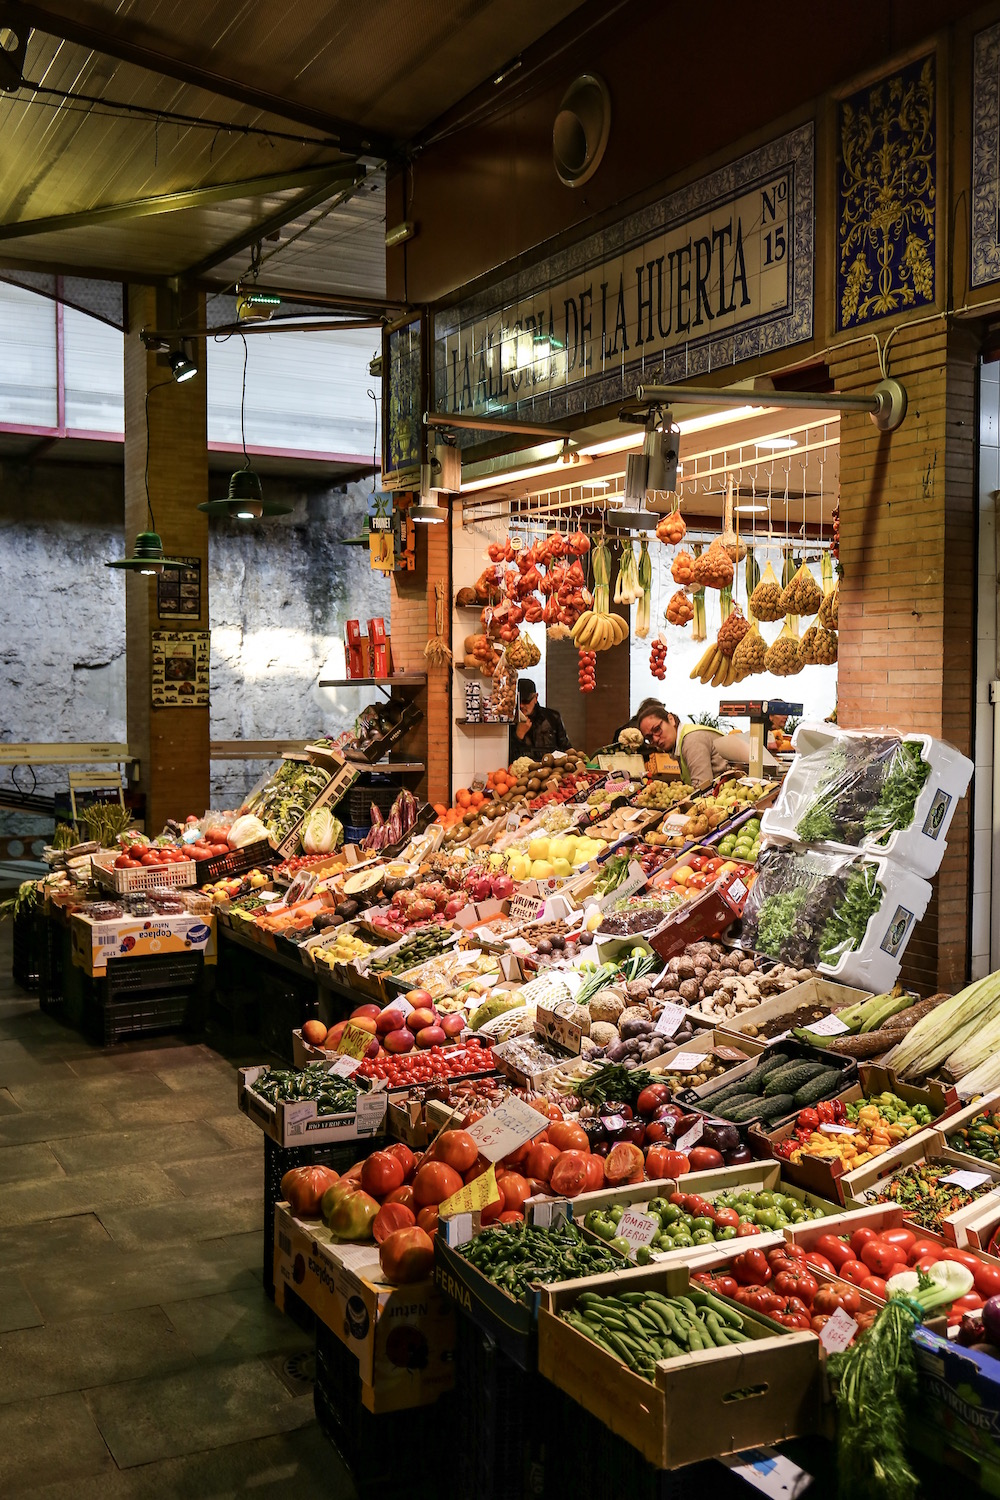 redhead-round-the-world-travel-blog-sevilla-fruit-veggies-market-sevilla-colours.JPG